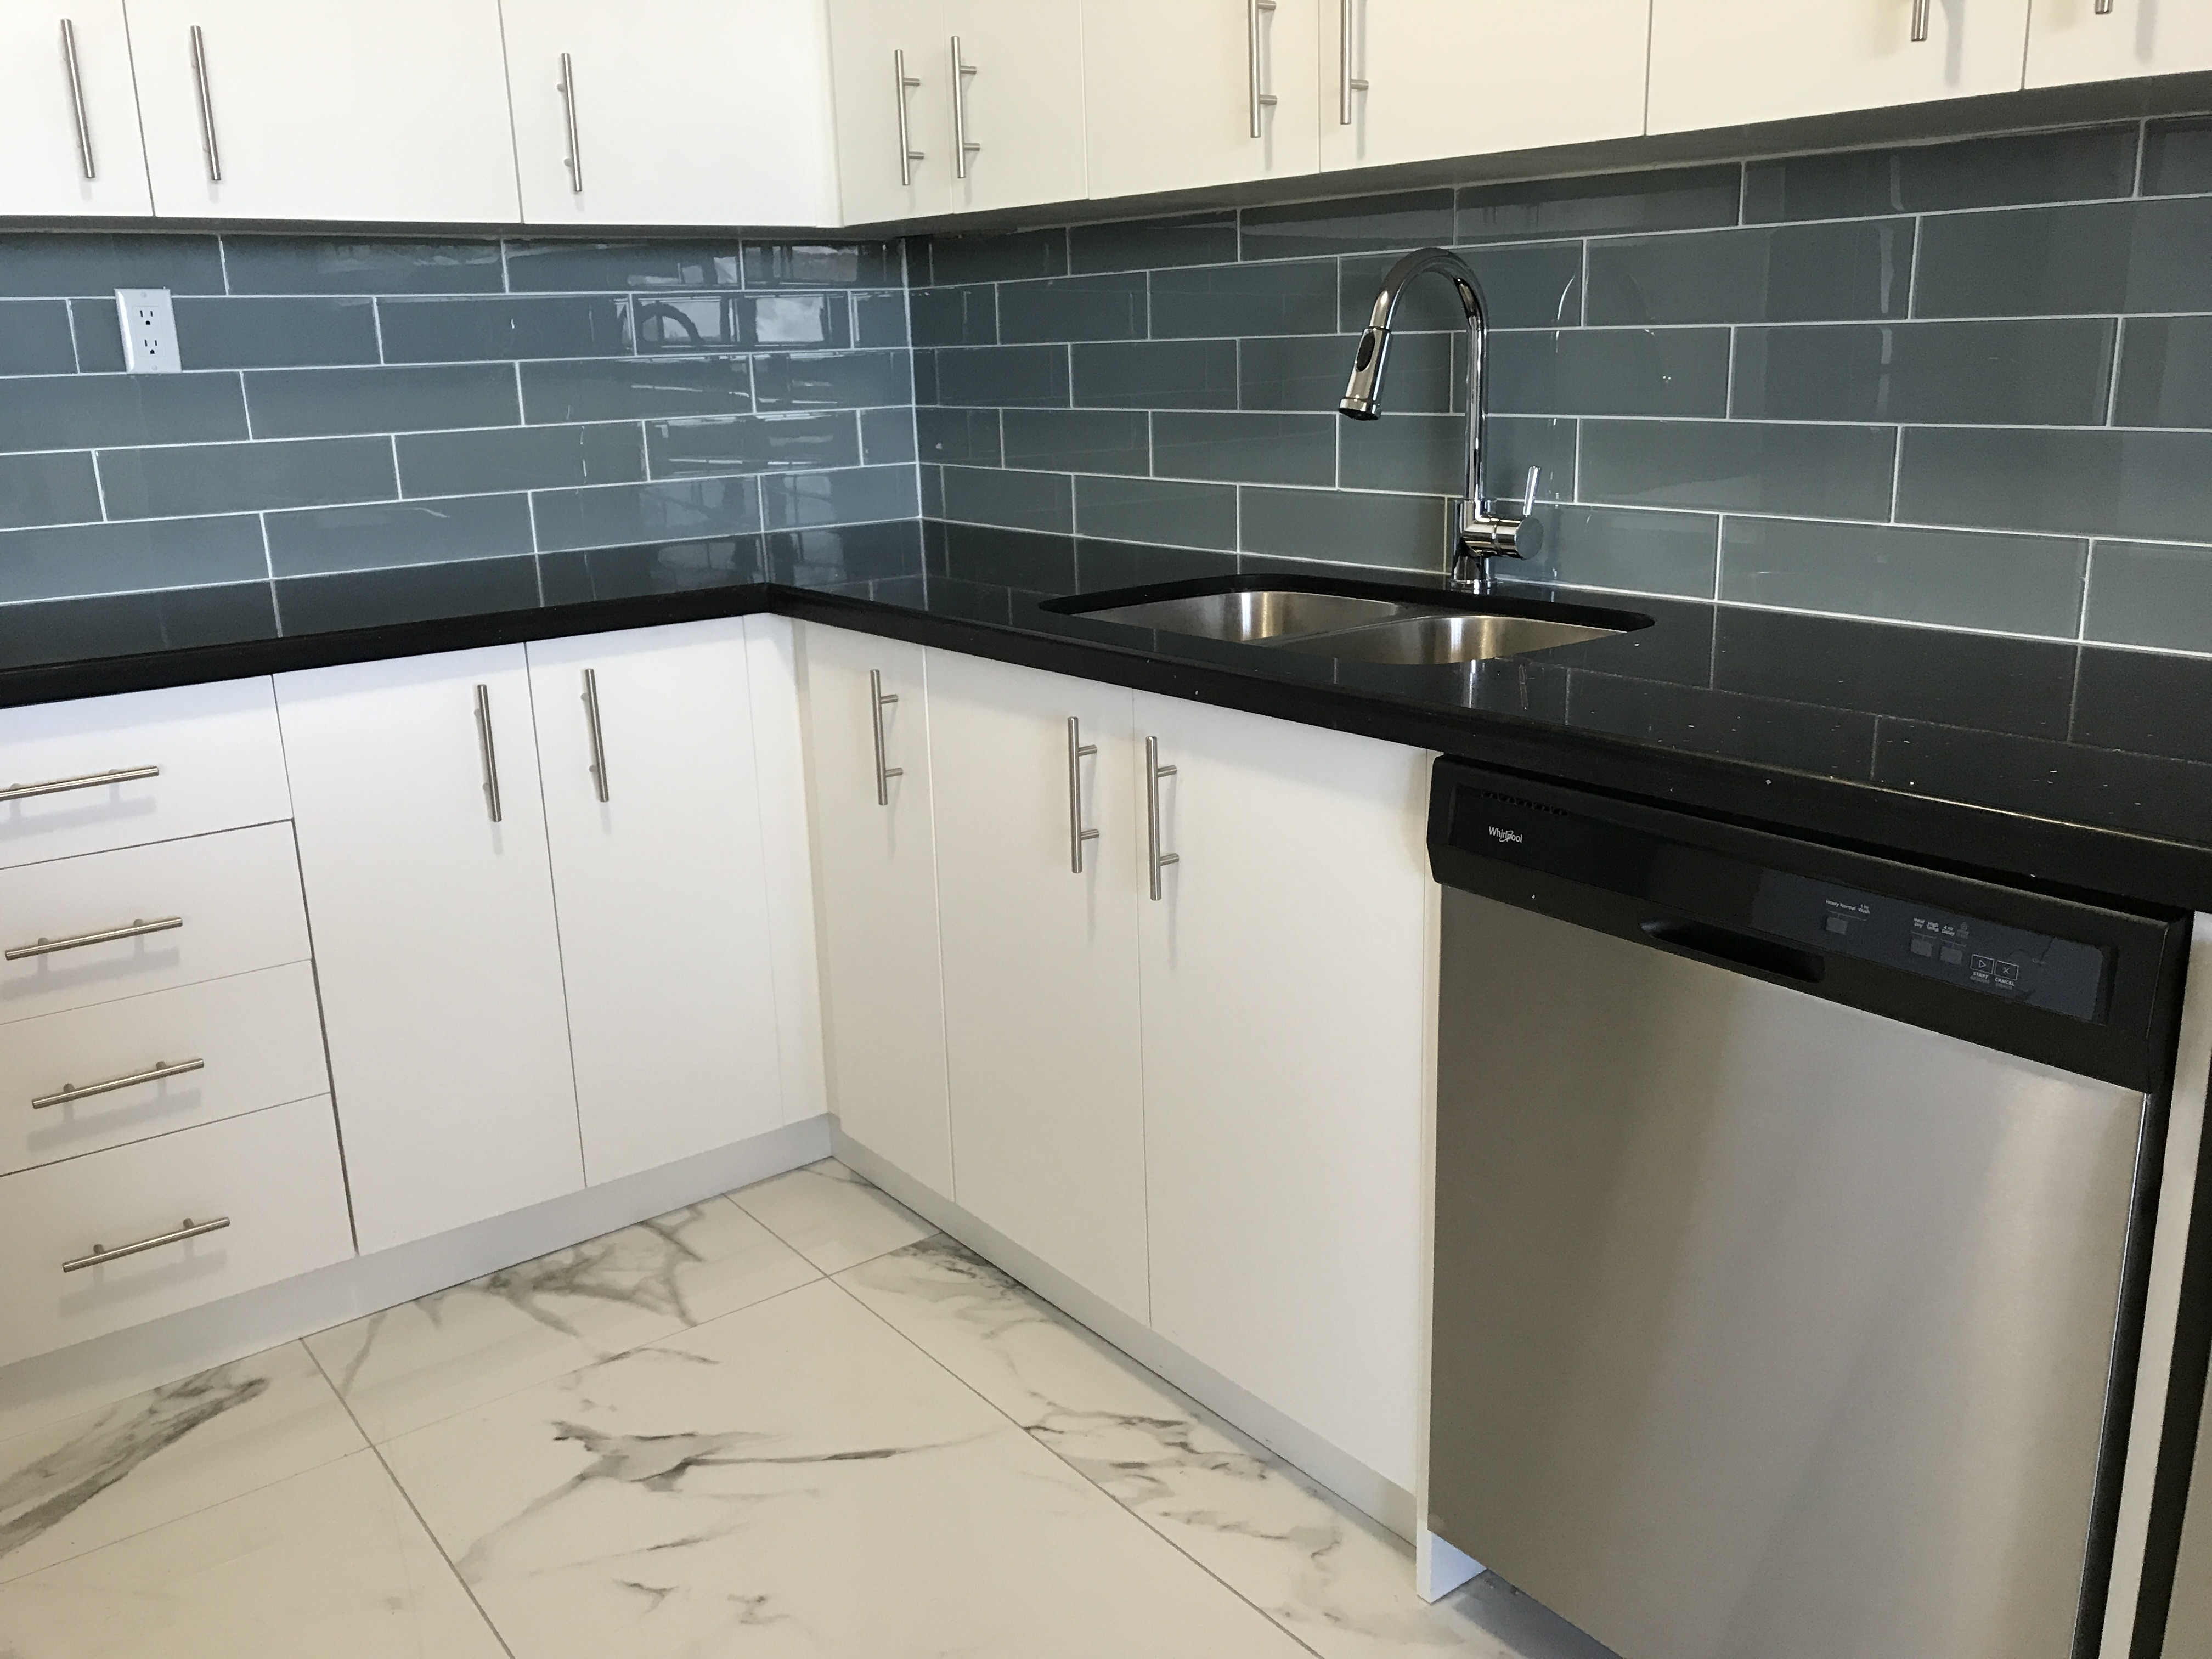 you us the talent cheap kitchen do want cheapest countertops contact hire countertop tech that travel we gray white to and can world pin amazing for remodel here